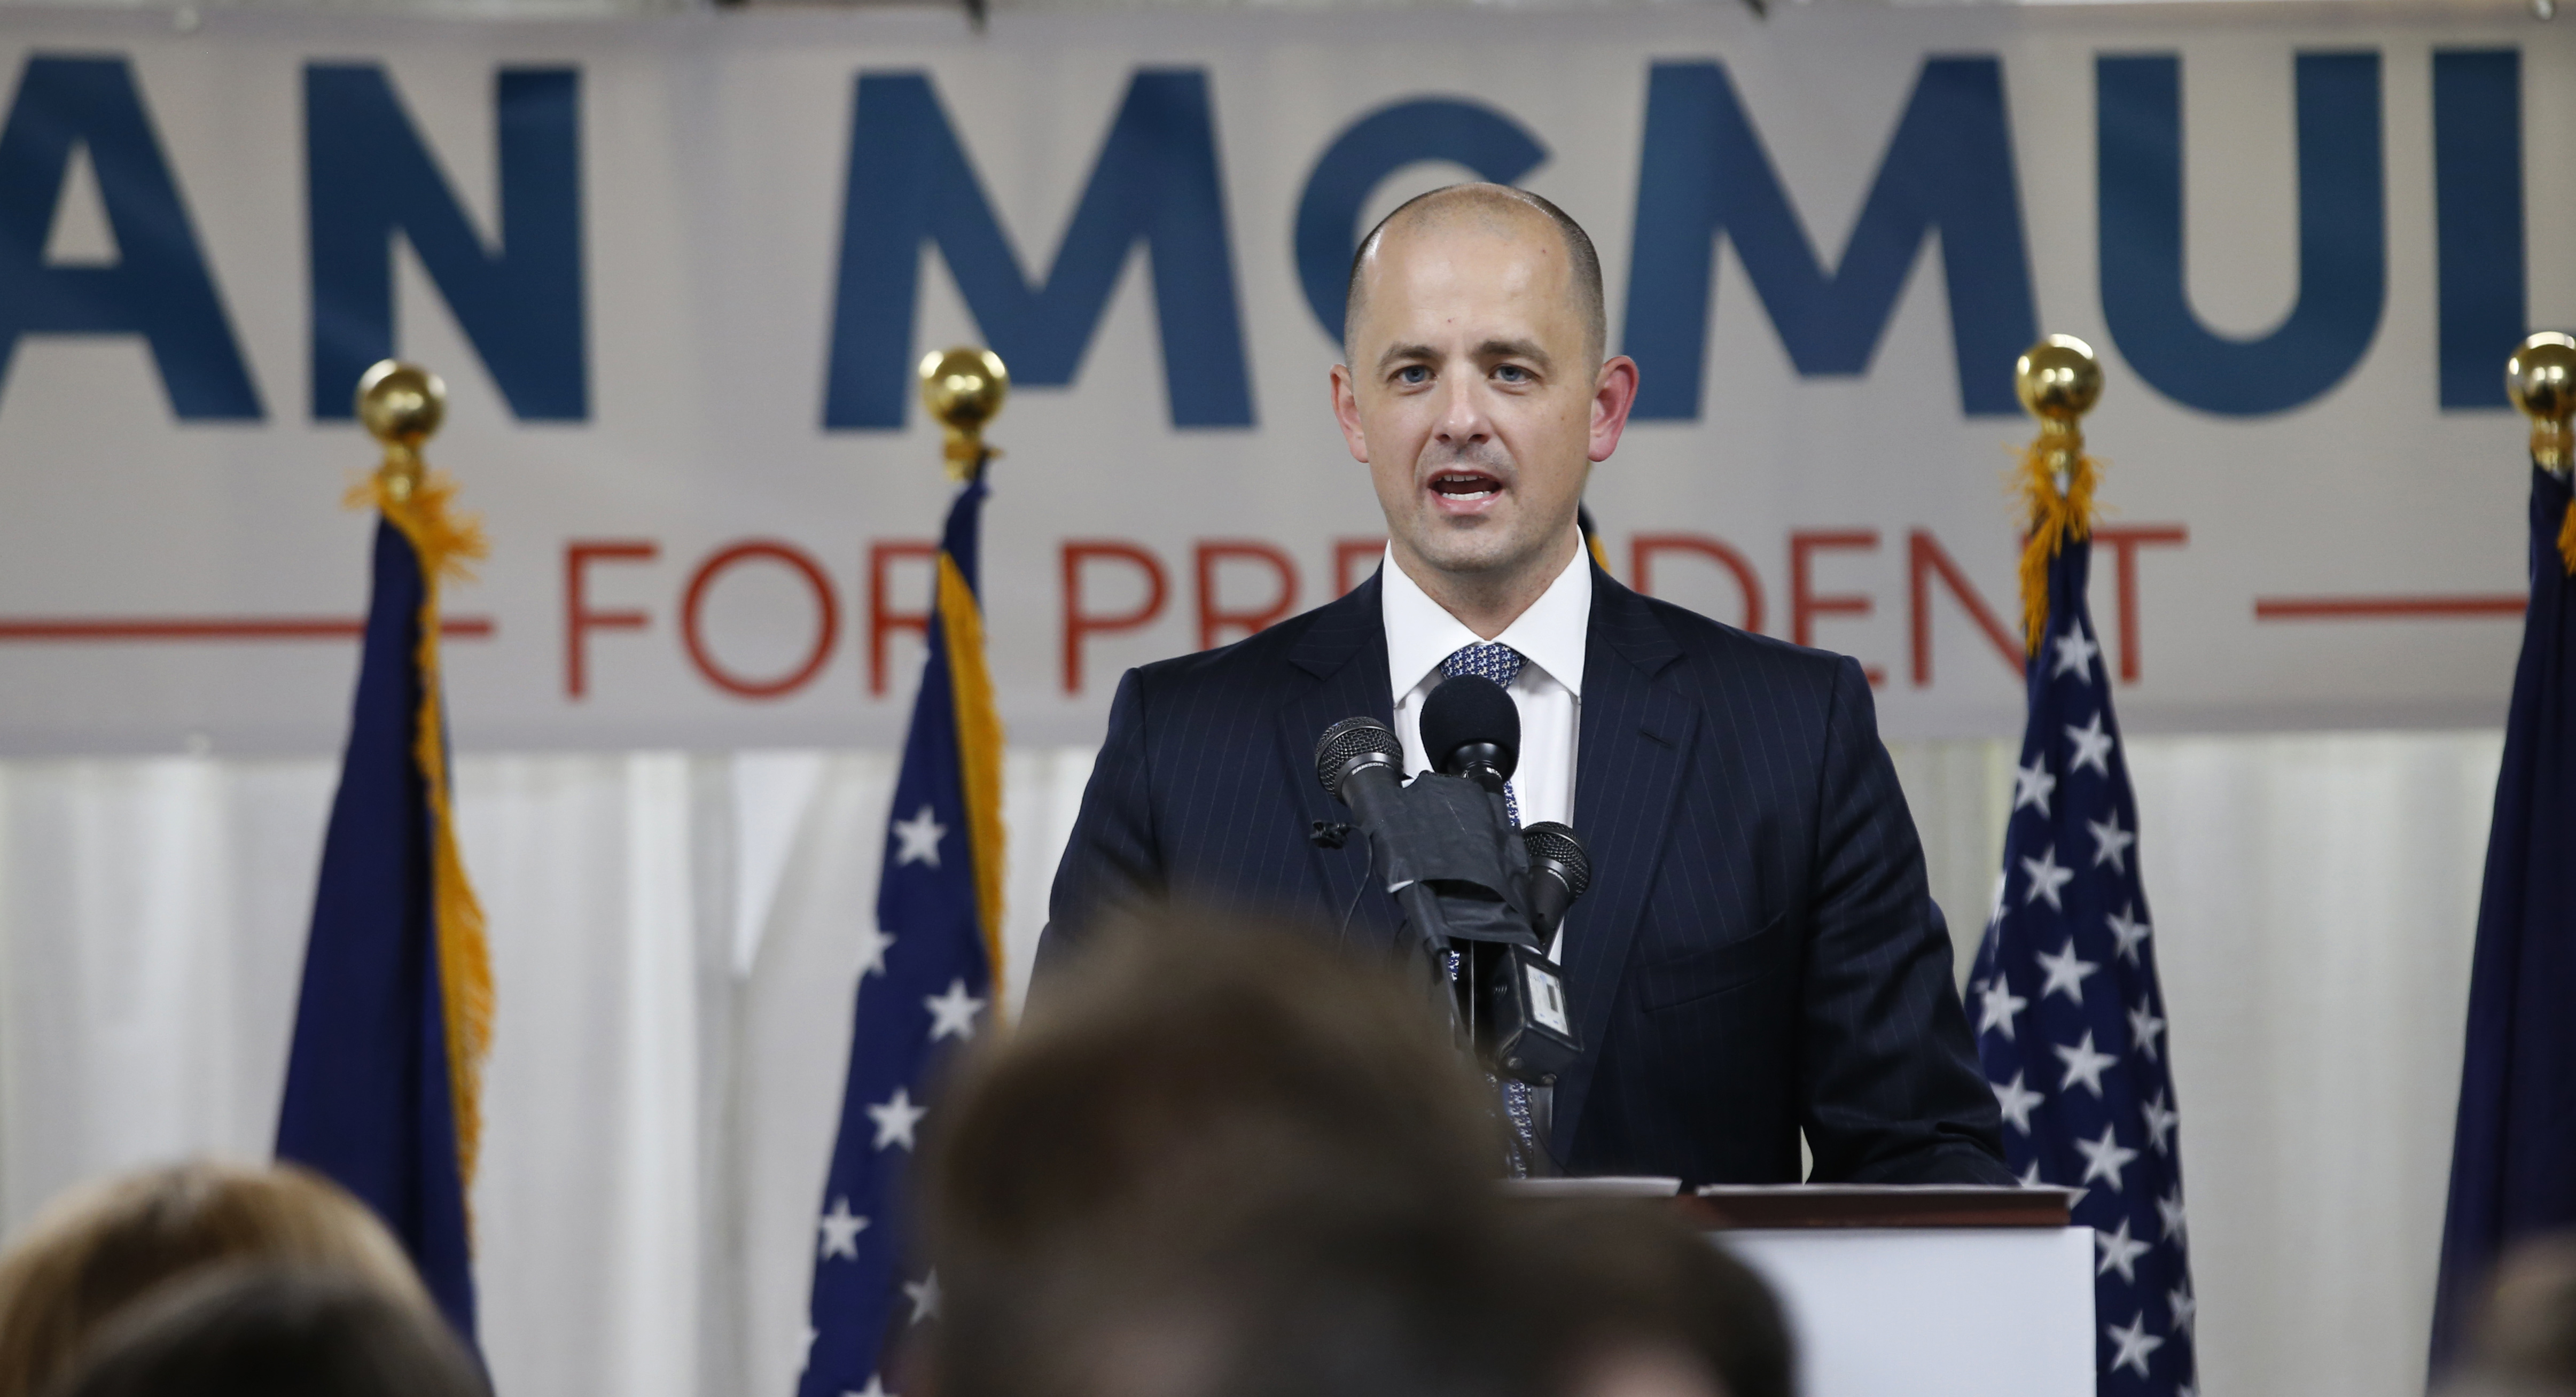 Evan McMullin (Photo: George Frey/Getty Images)